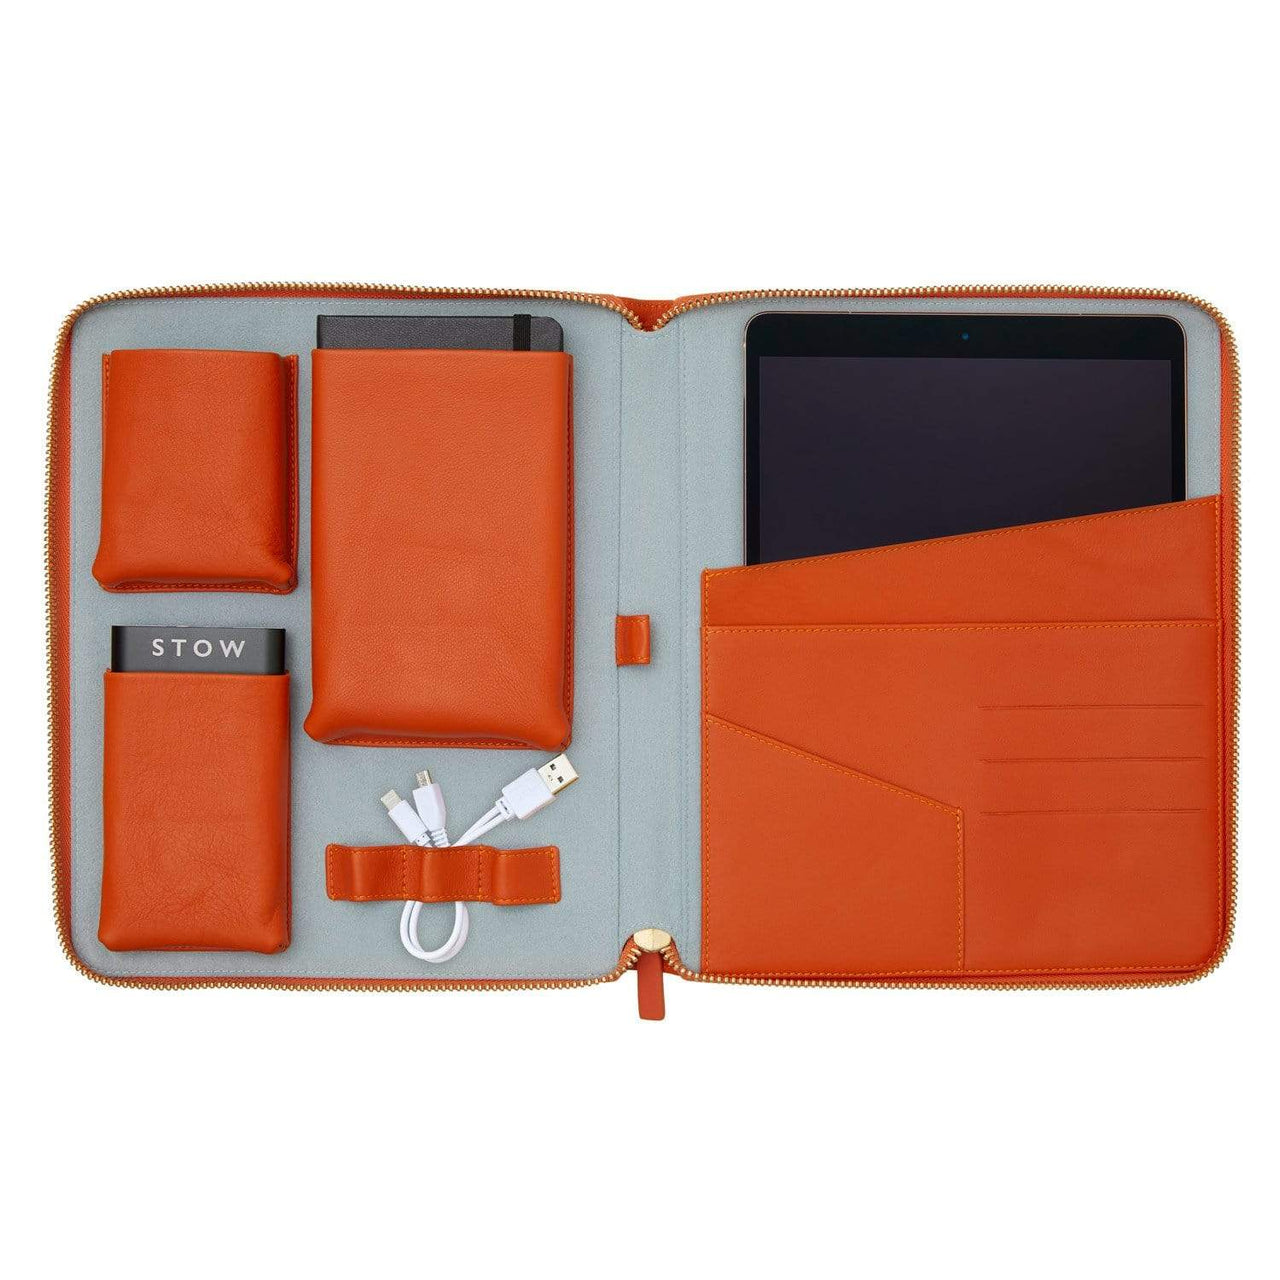 STOW Tablet Cases Amber Orange & Sky Blue / Black / Blind The World Class Tech Case- Personalized